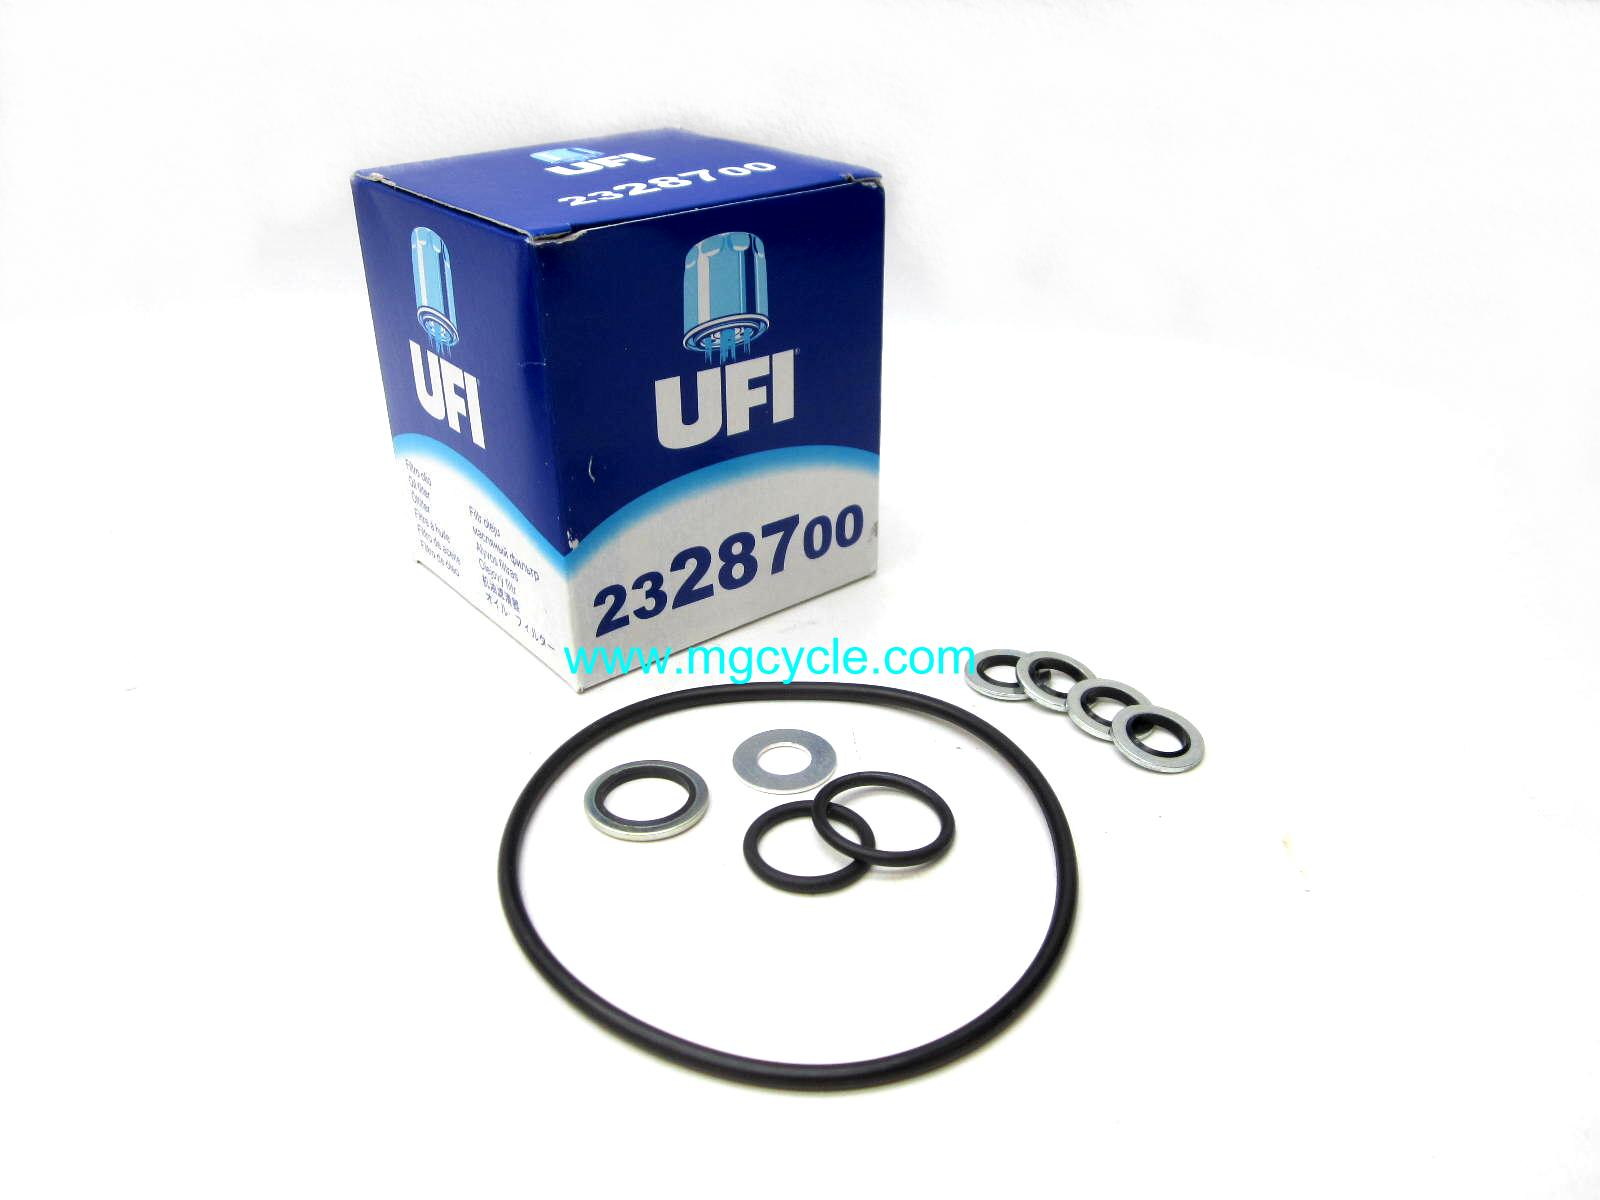 All fluids UFI oil change kit V11 Sport V11 LeMans Scura Tenni